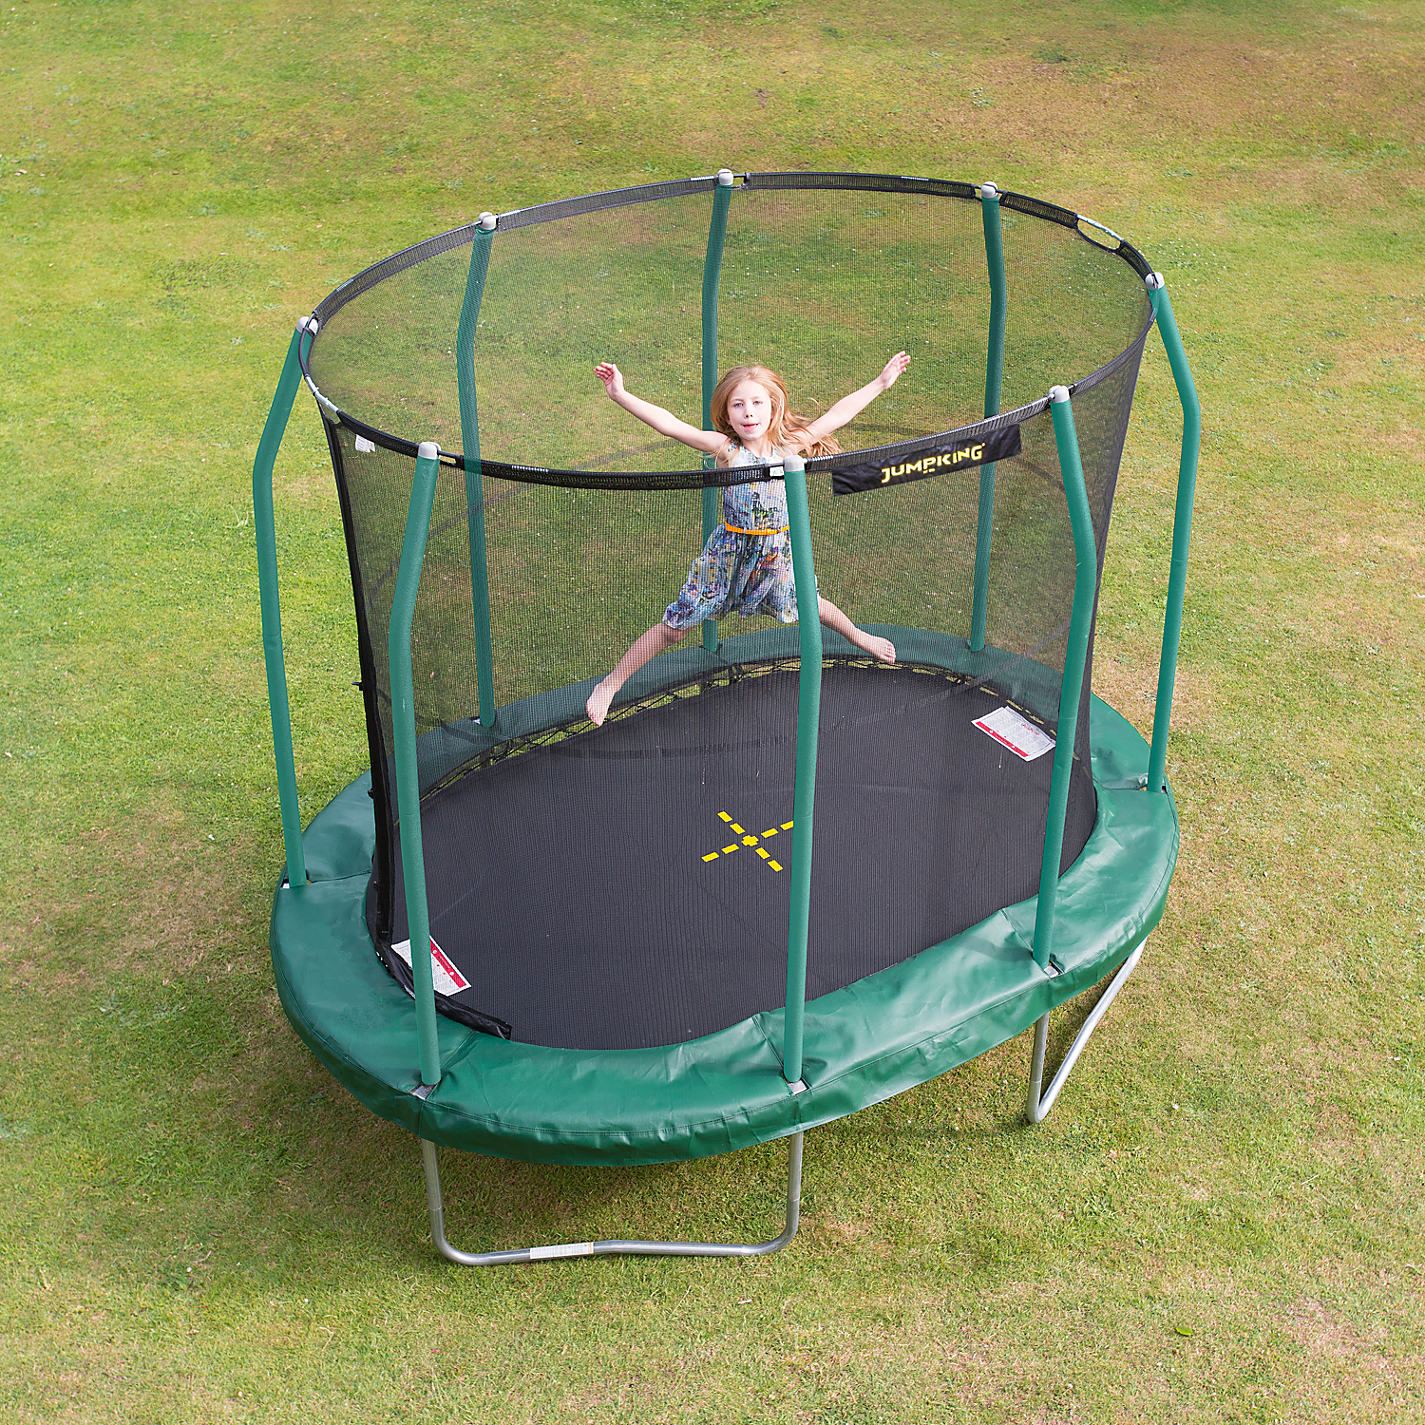 trampoline occasion stunning trampoline with trampoline occasion latest france trampoline with. Black Bedroom Furniture Sets. Home Design Ideas